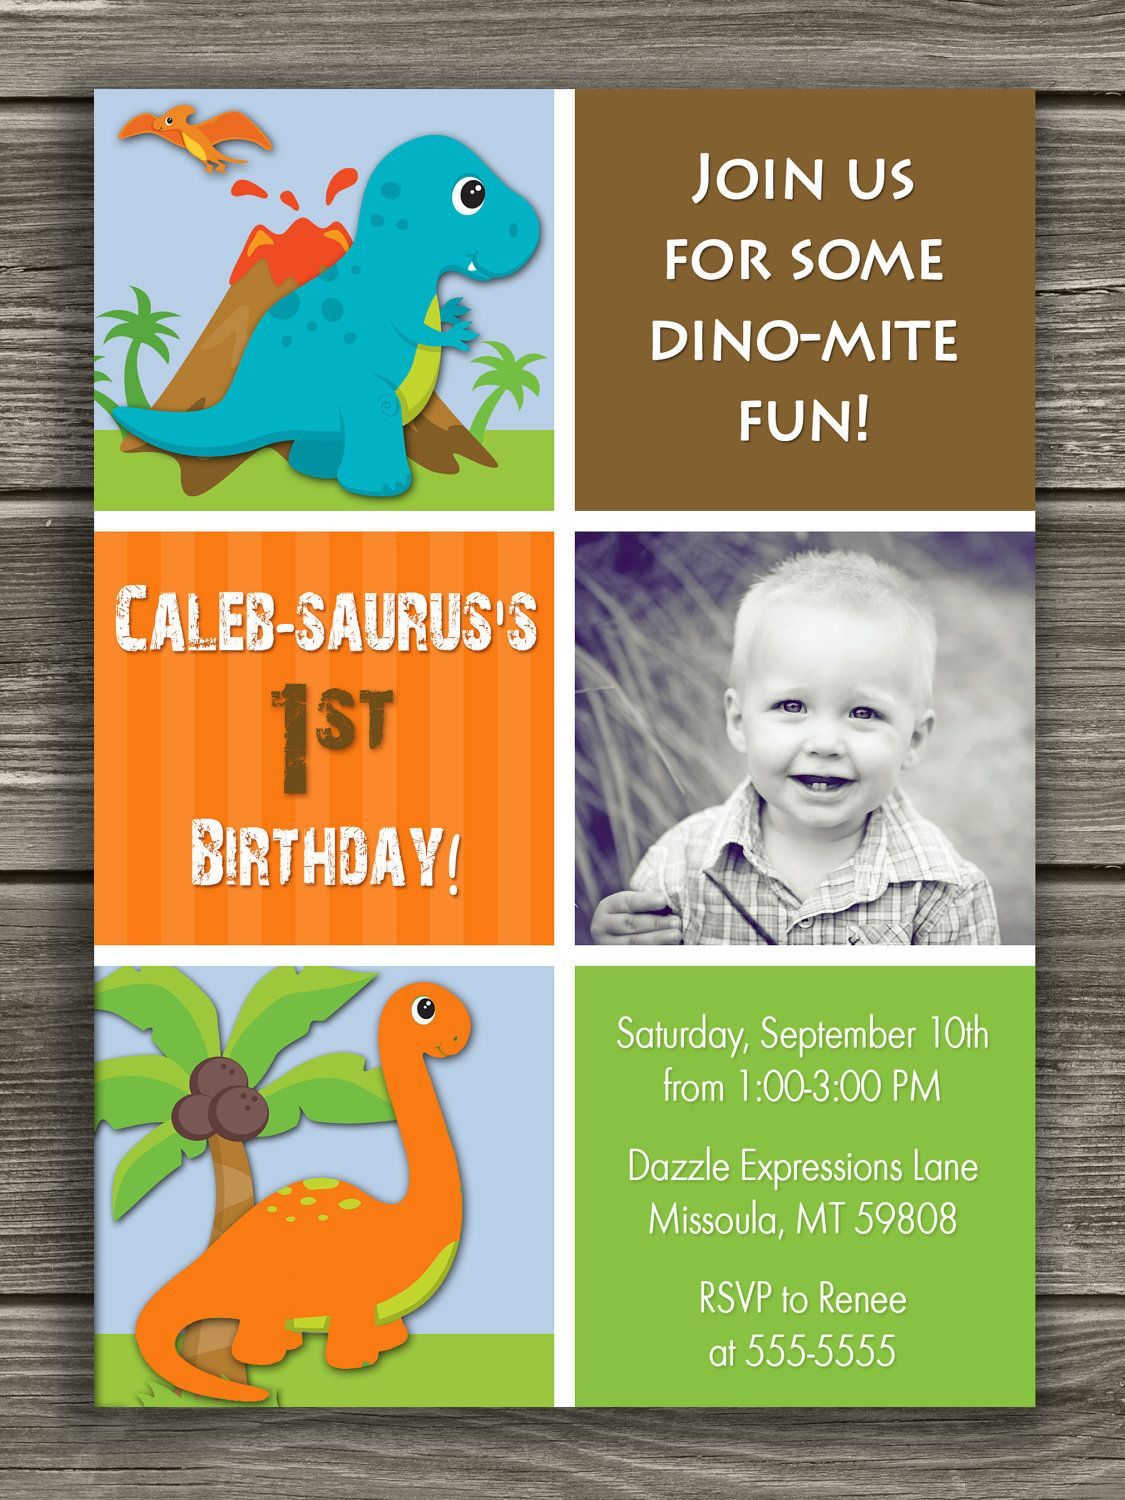 Dinosaur Birthday Invitation - FREE thank you card included. $15.00 ...